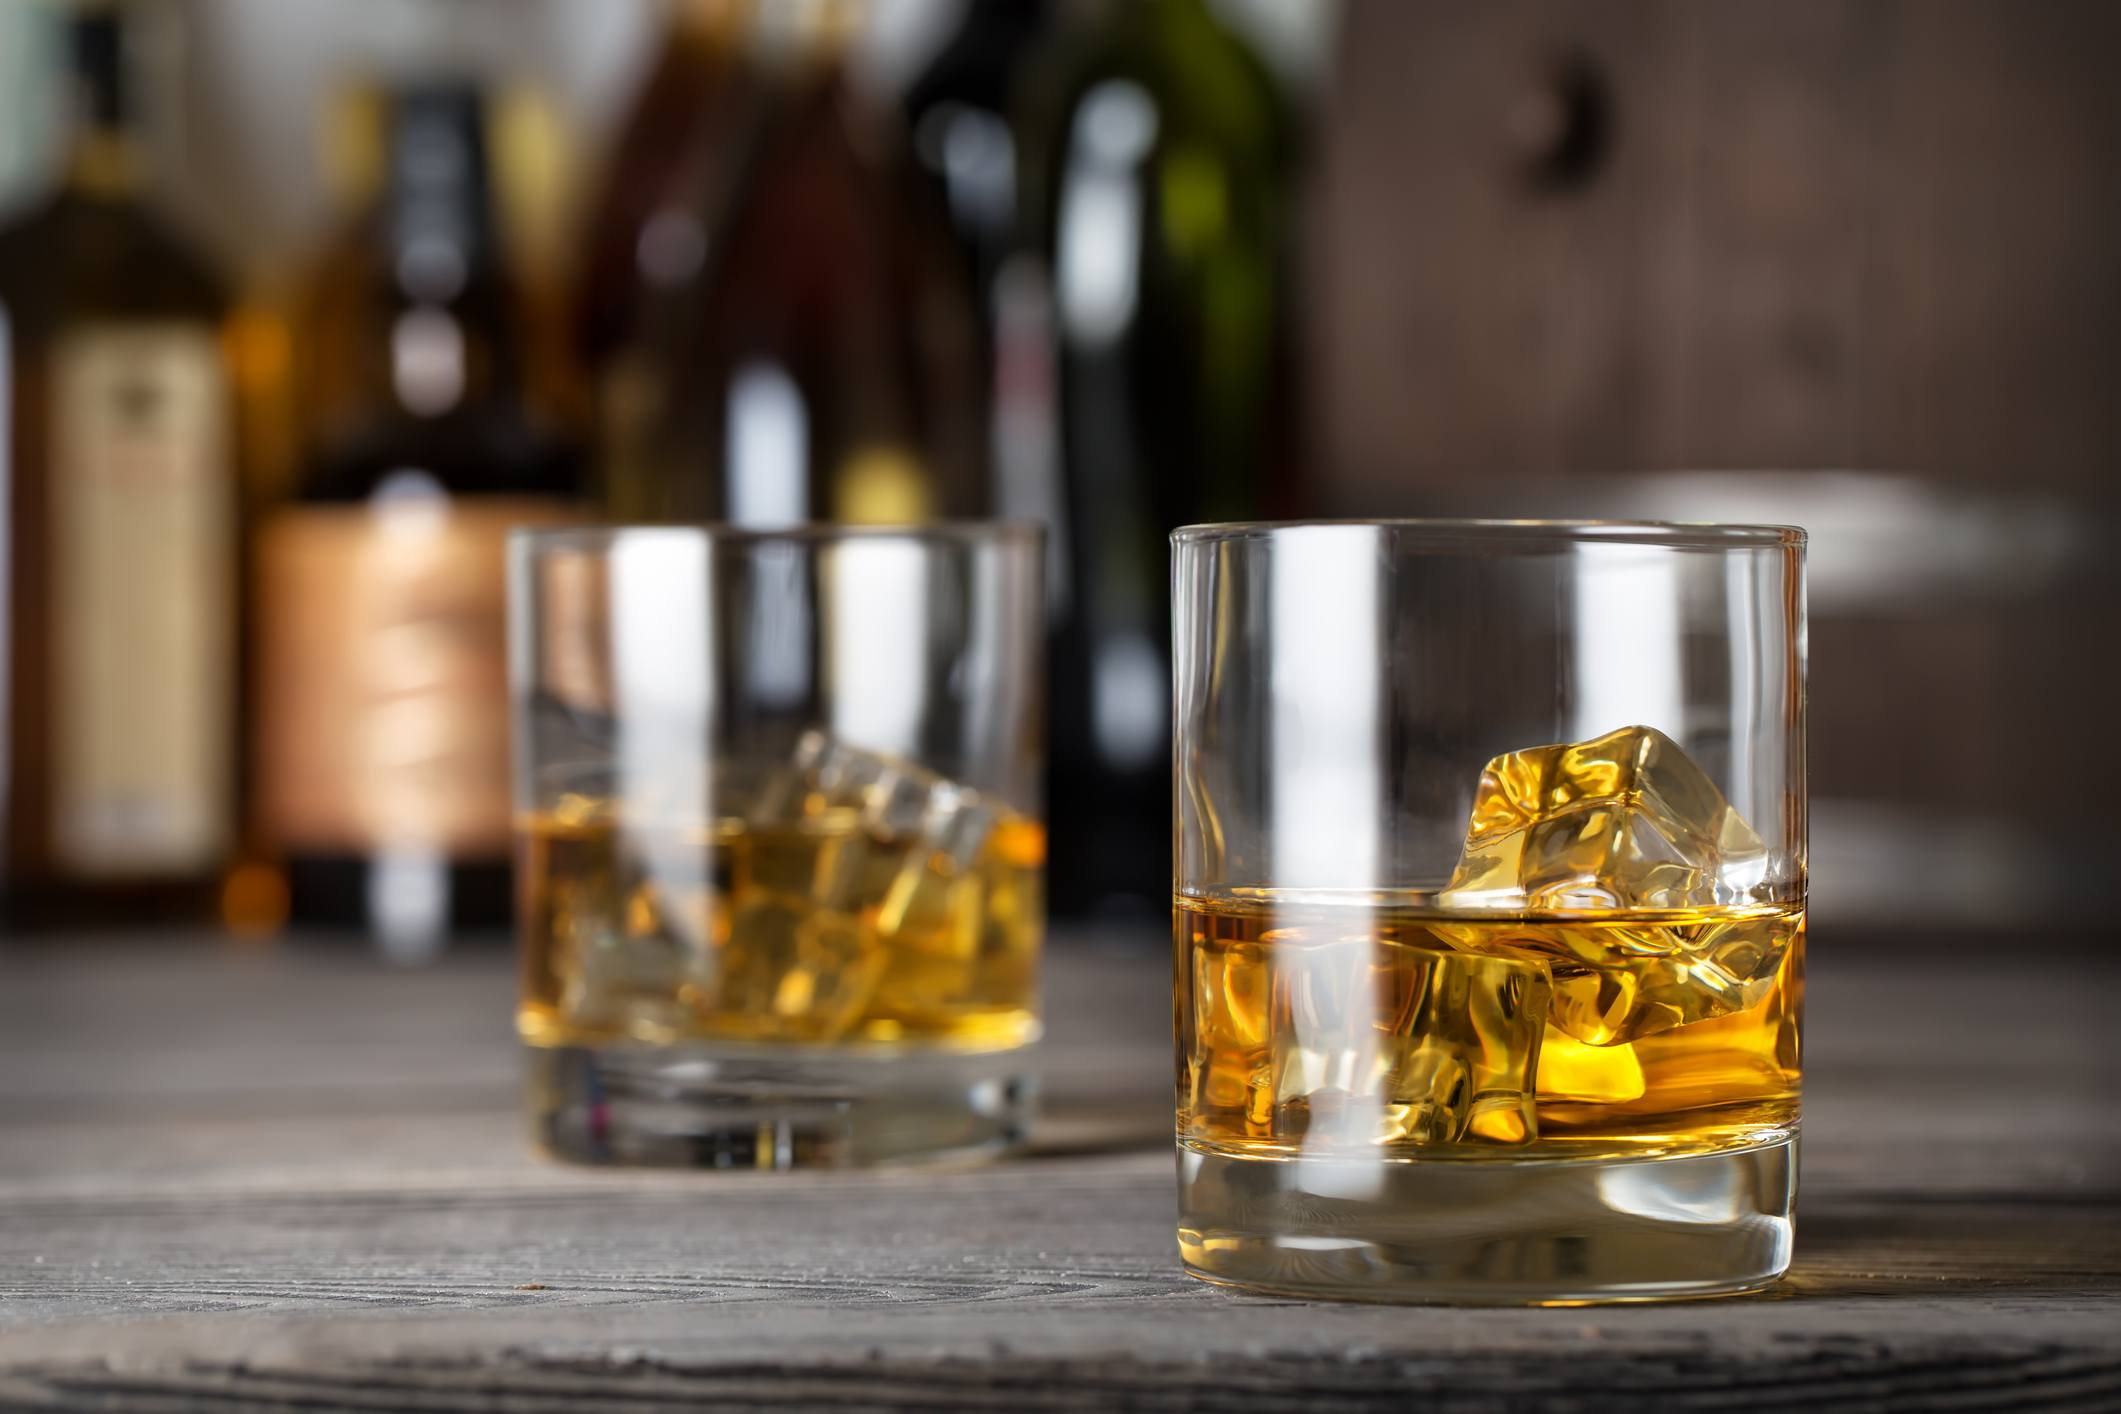 Two glasses of whiskey with ice on the bar counter against the bottles